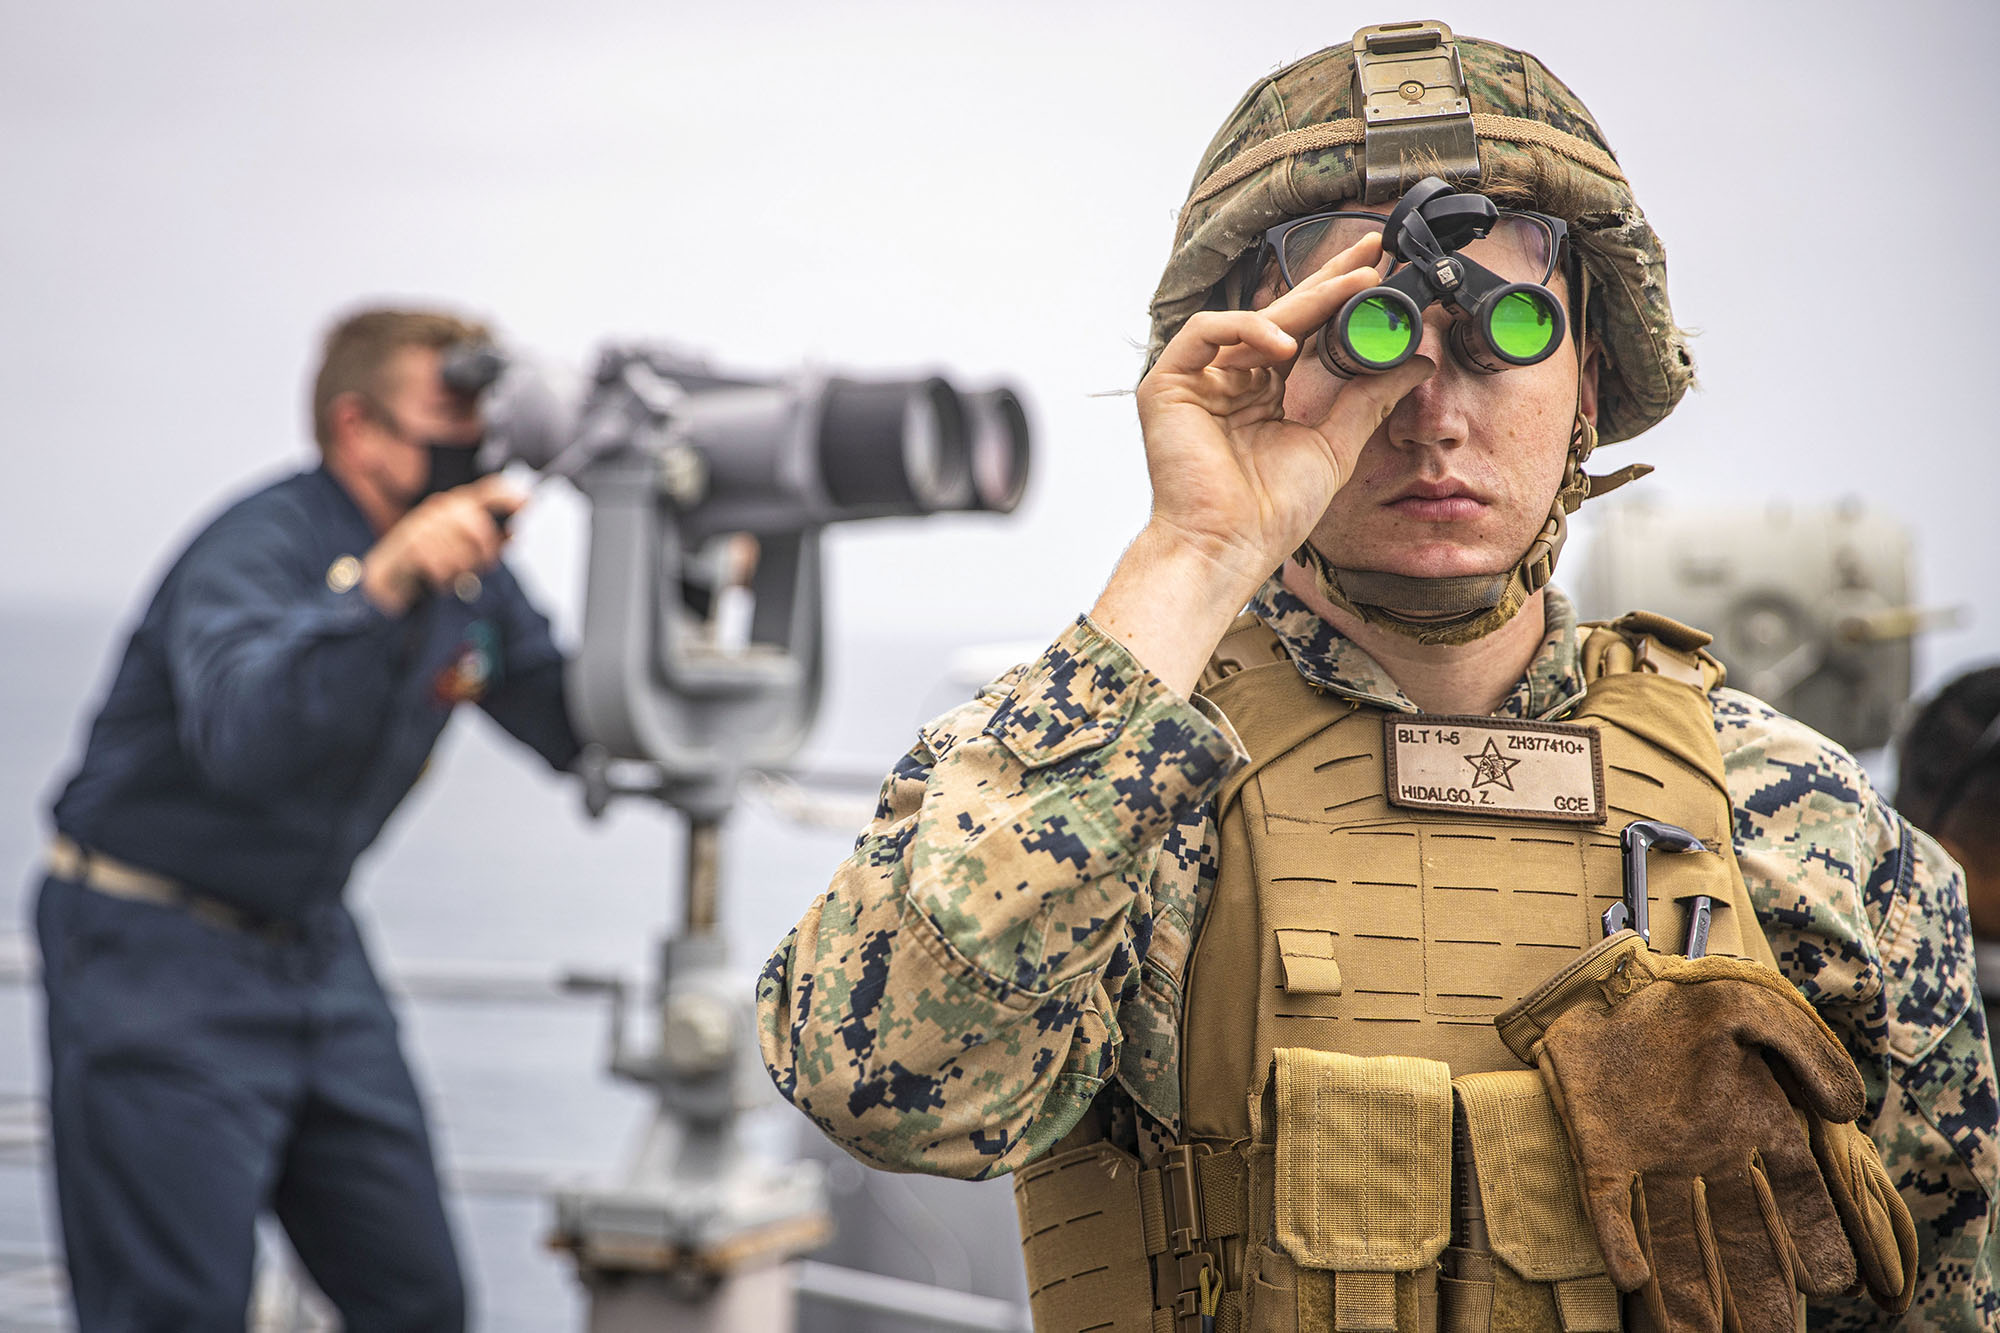 U.S. Marine Corps Lance Cpl. Zachary Hidalgo provides observation during formation April 20, 2021, steaming aboard the amphibious dock landing ship USS Pearl Harbor (LSD 52) in the Pacific Ocean. (Cpl. Jaxson Fryar/Marine Corps)